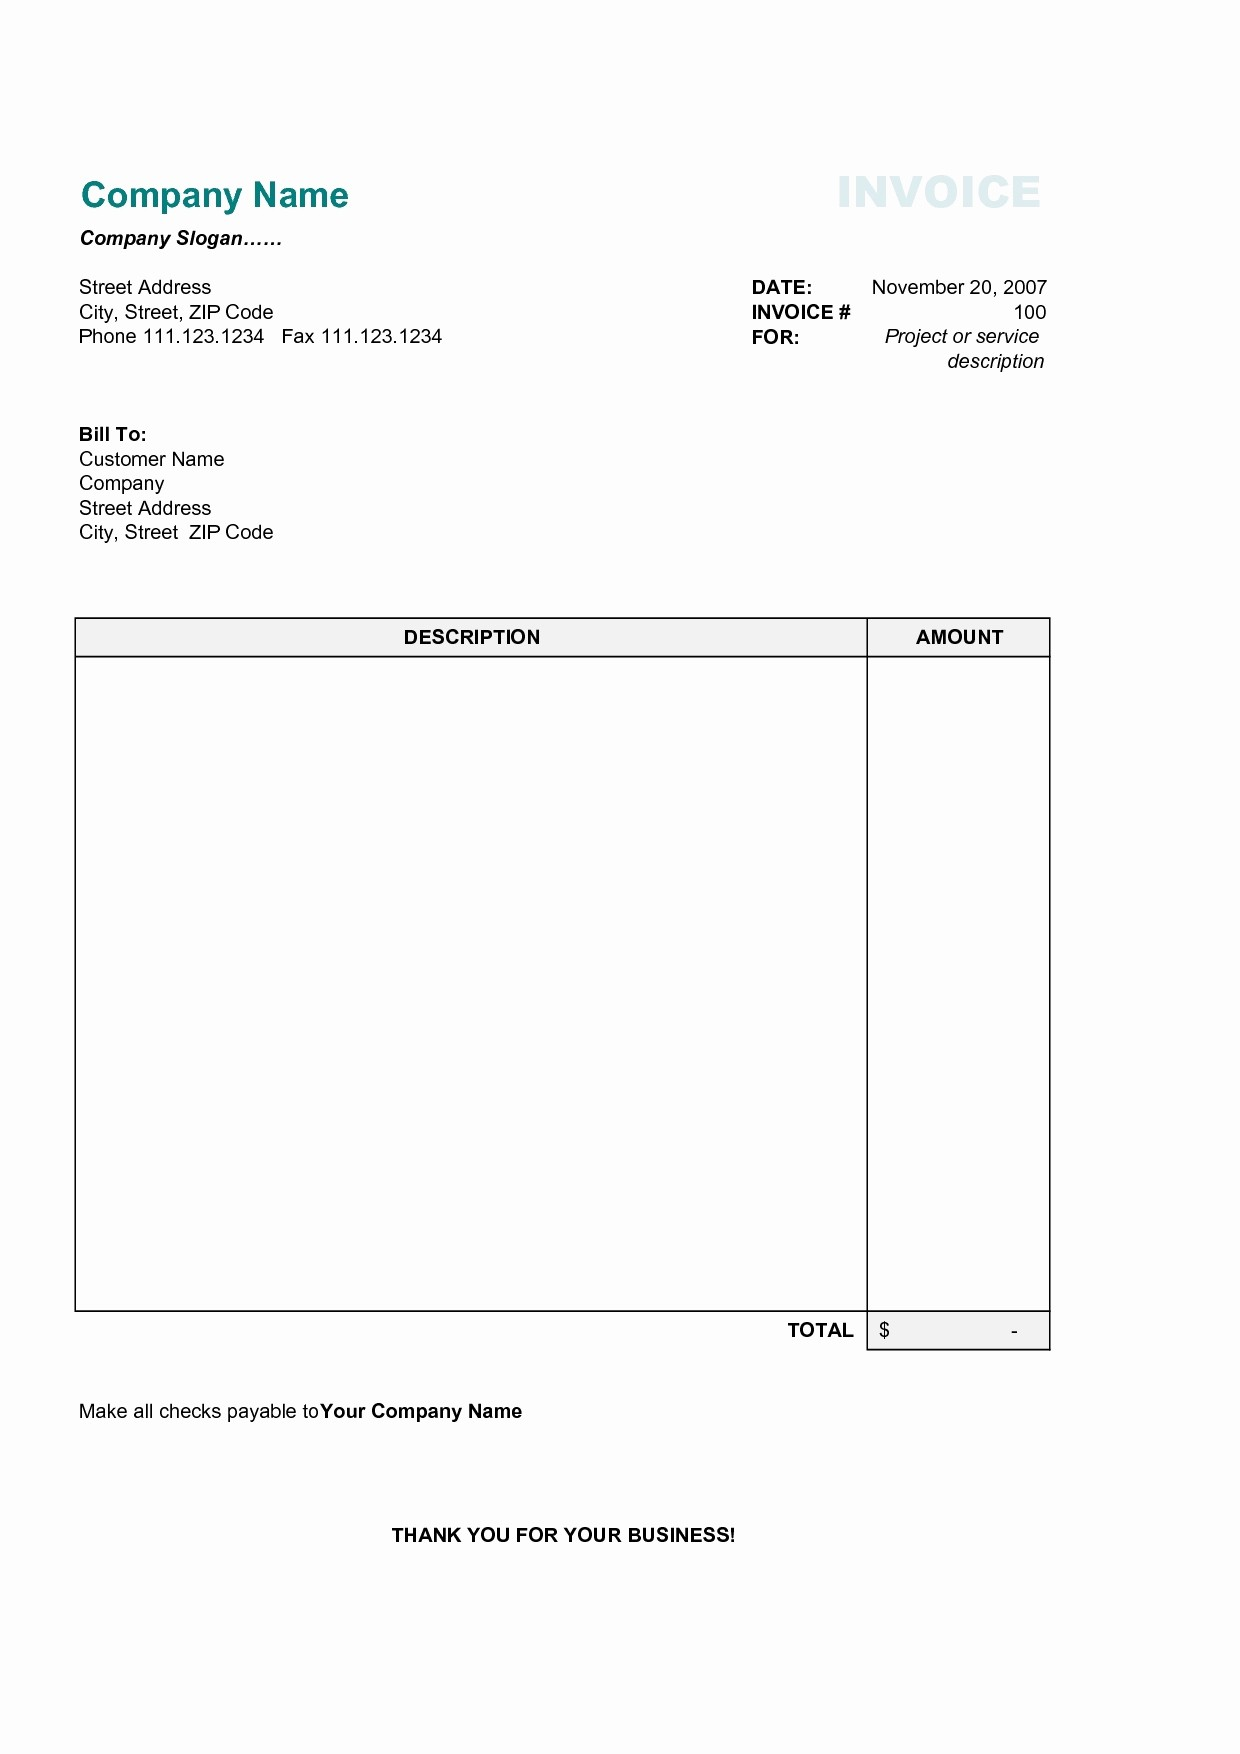 Free Service Invoice Template Download Fresh Simple Invoice Template Pdf Invoice Template Ideas